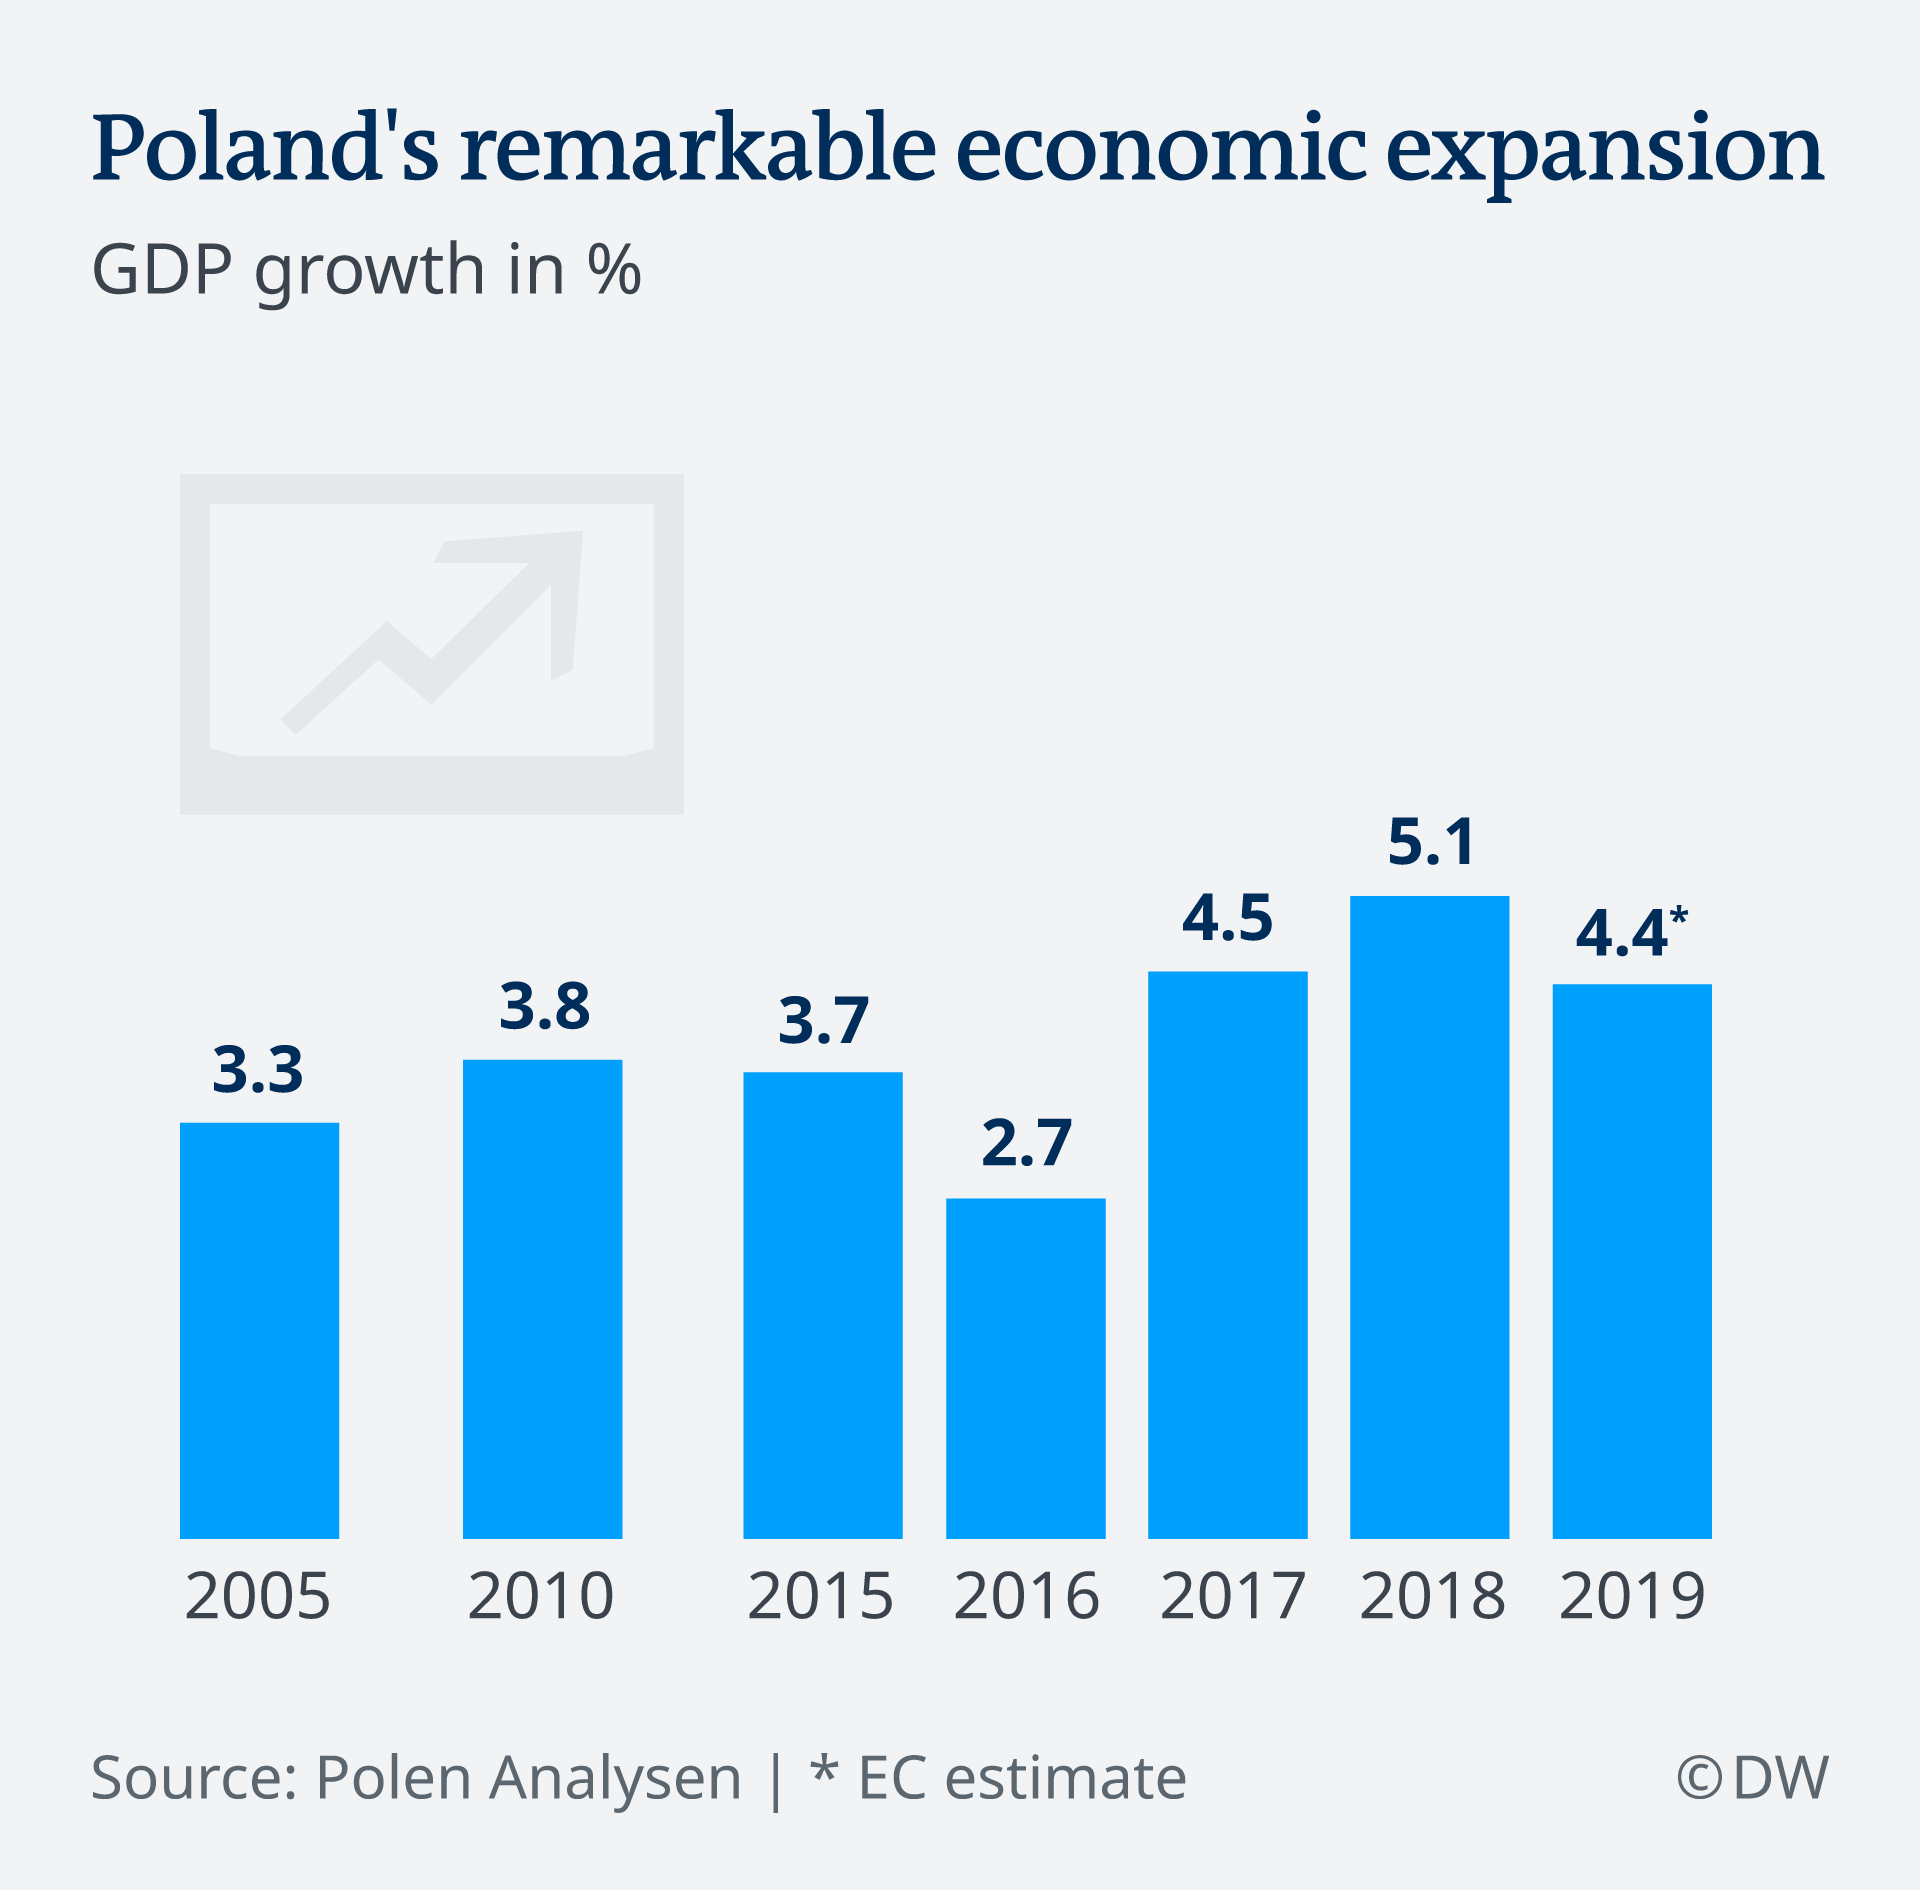 Polish GDP growth over the years